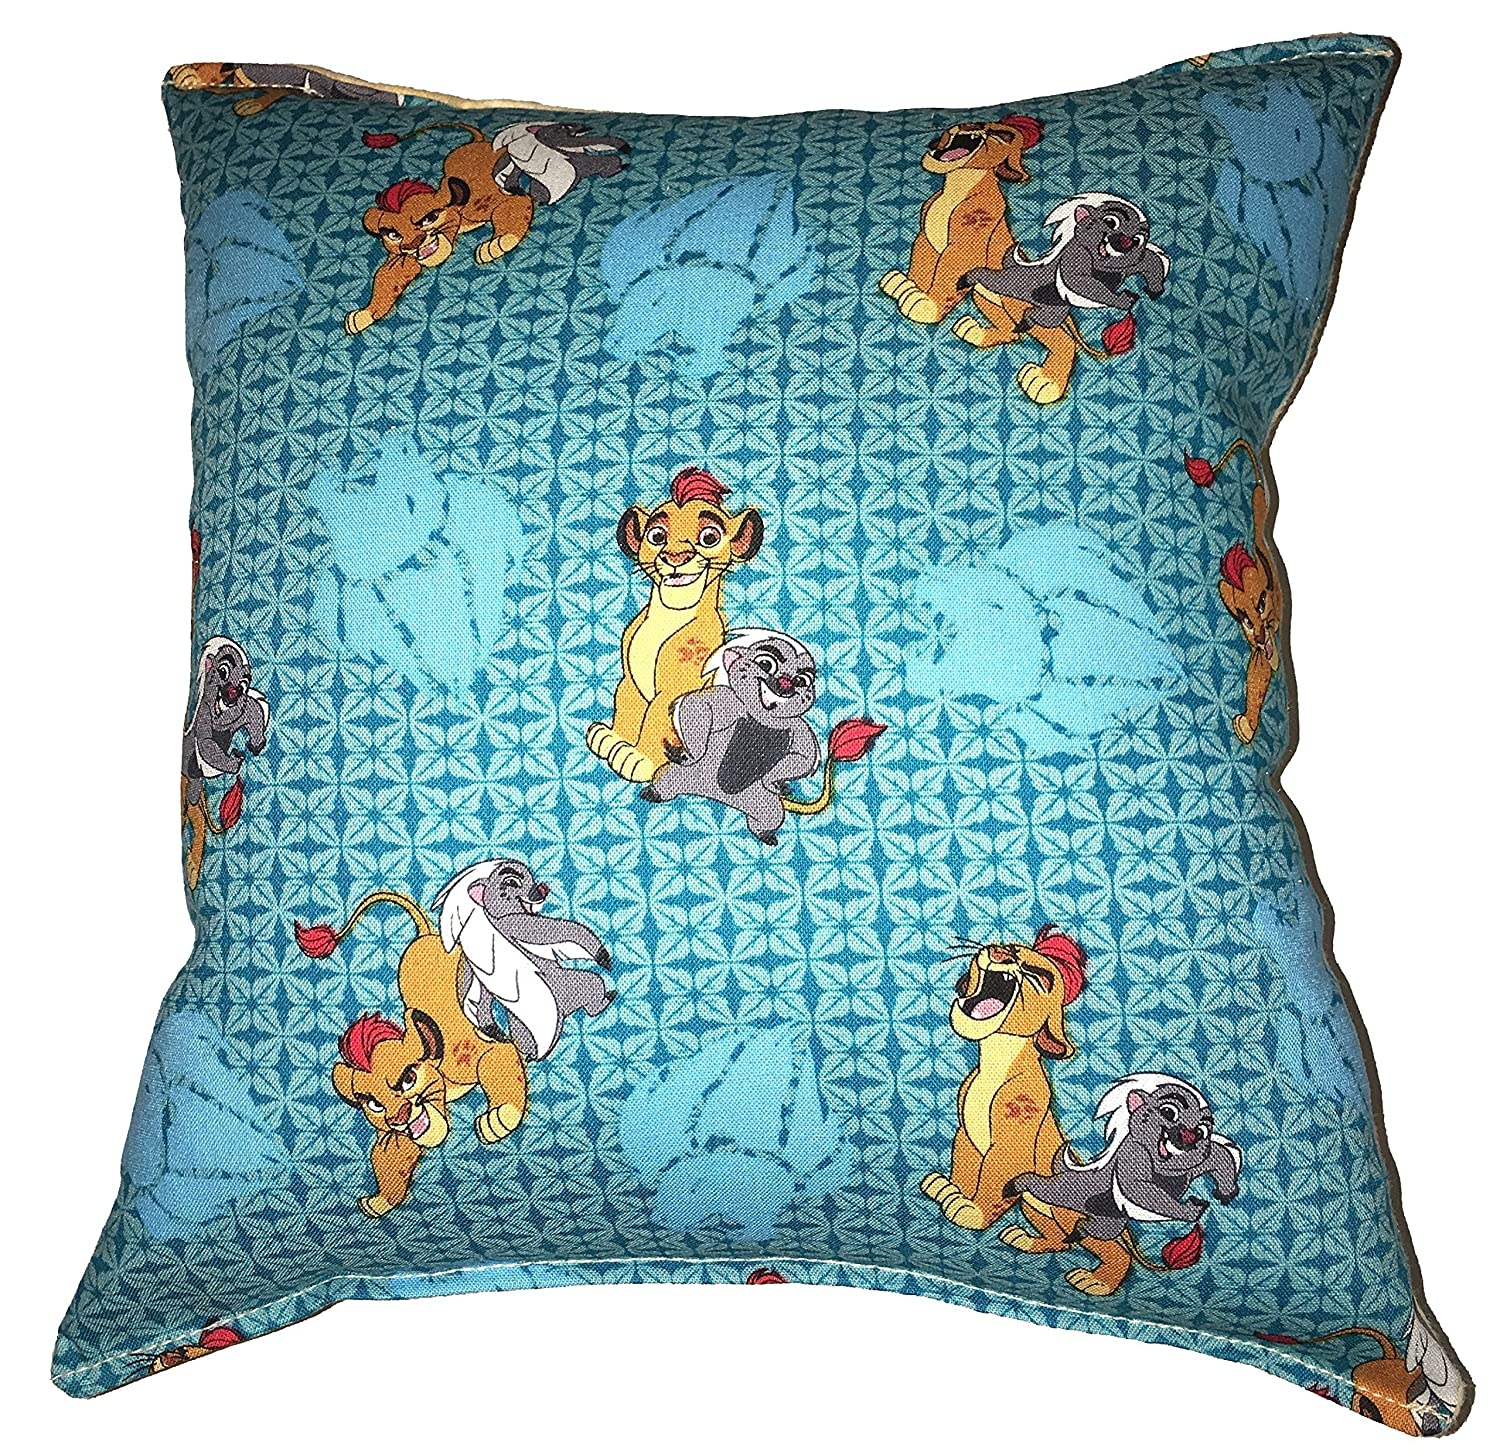 "Lion Guard Pillow Lion King, Kion, Bunga, HANDMADE Disney Jr, Tv Show, Travel , Daycare , NEW Pillow is approximately 10"" X 11"